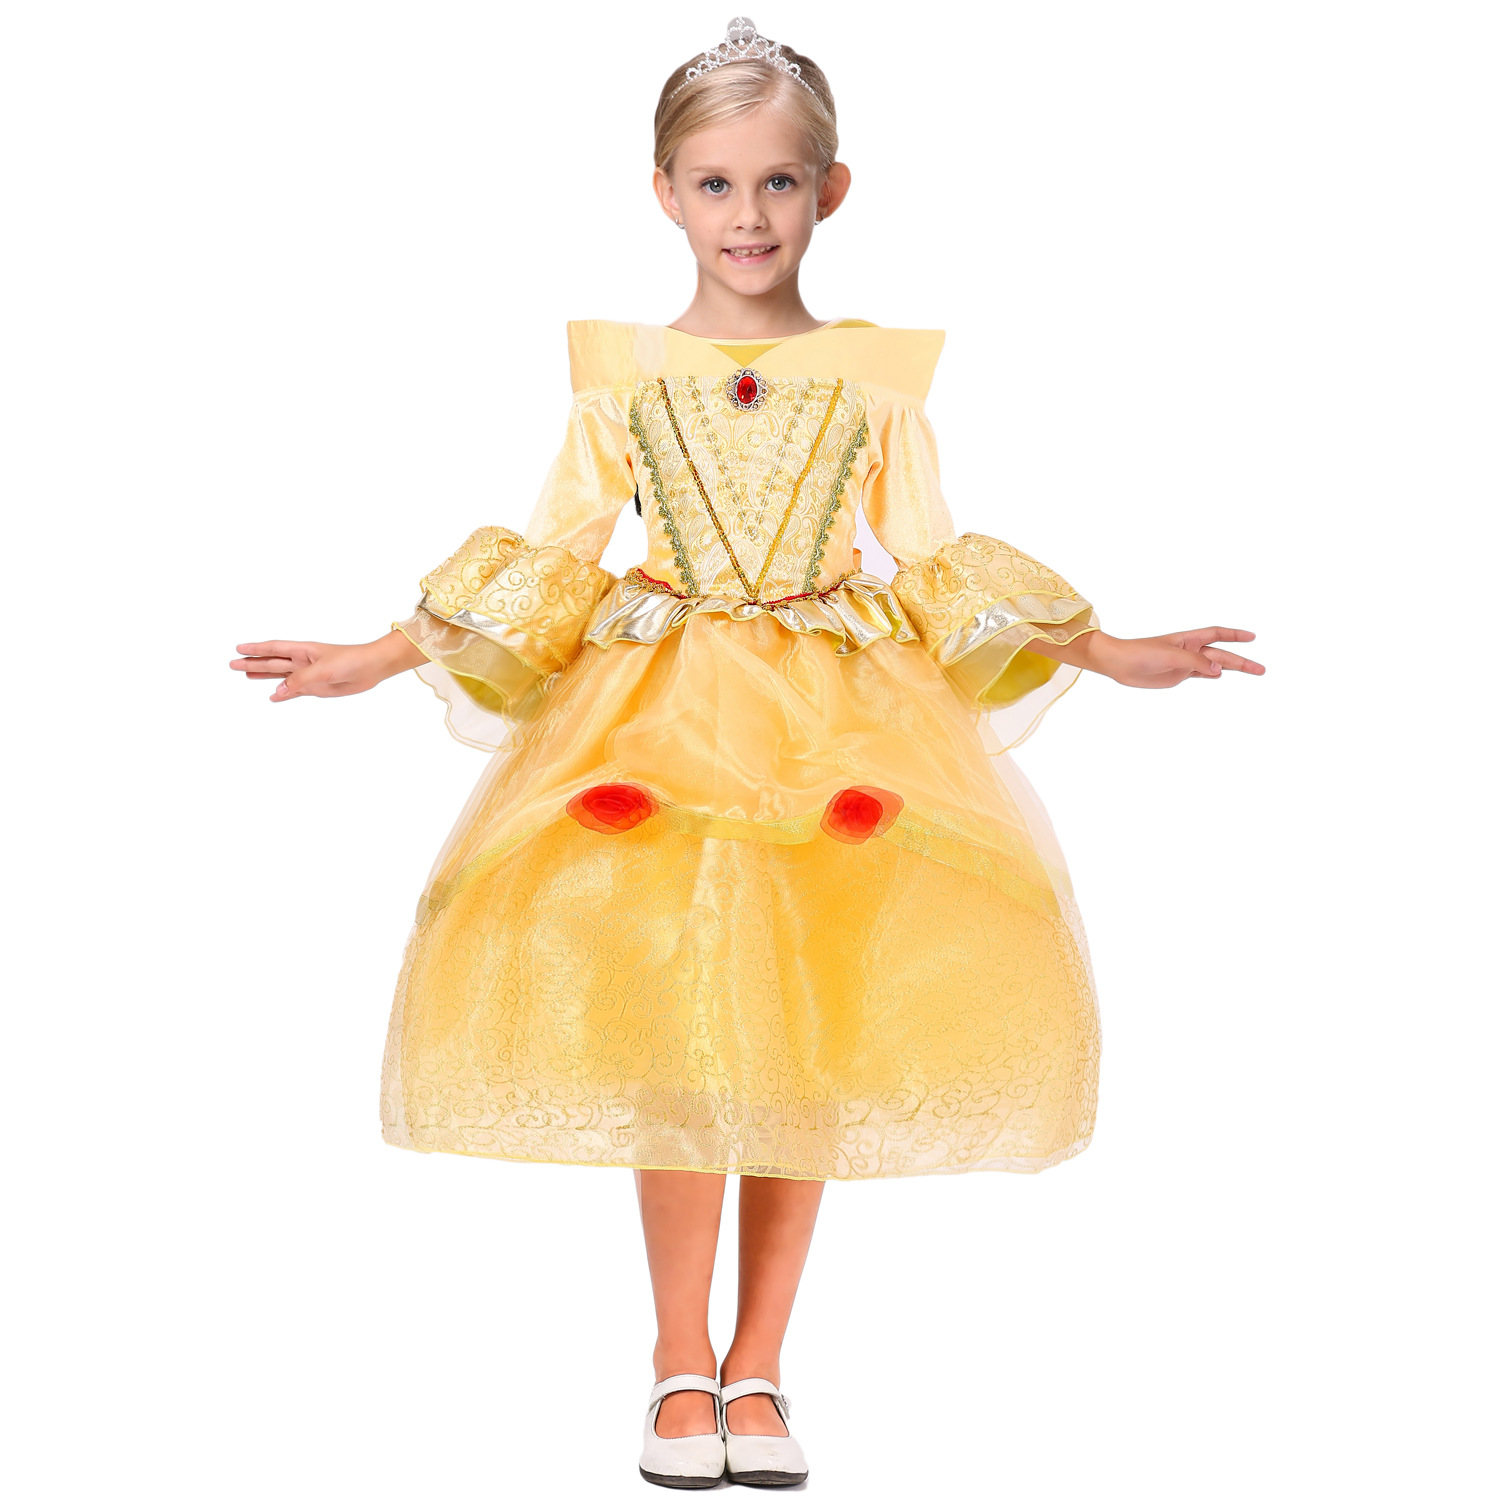 cw inspired halloween costumes wedding dress halloween costume Credit CW44 Tampa Bay